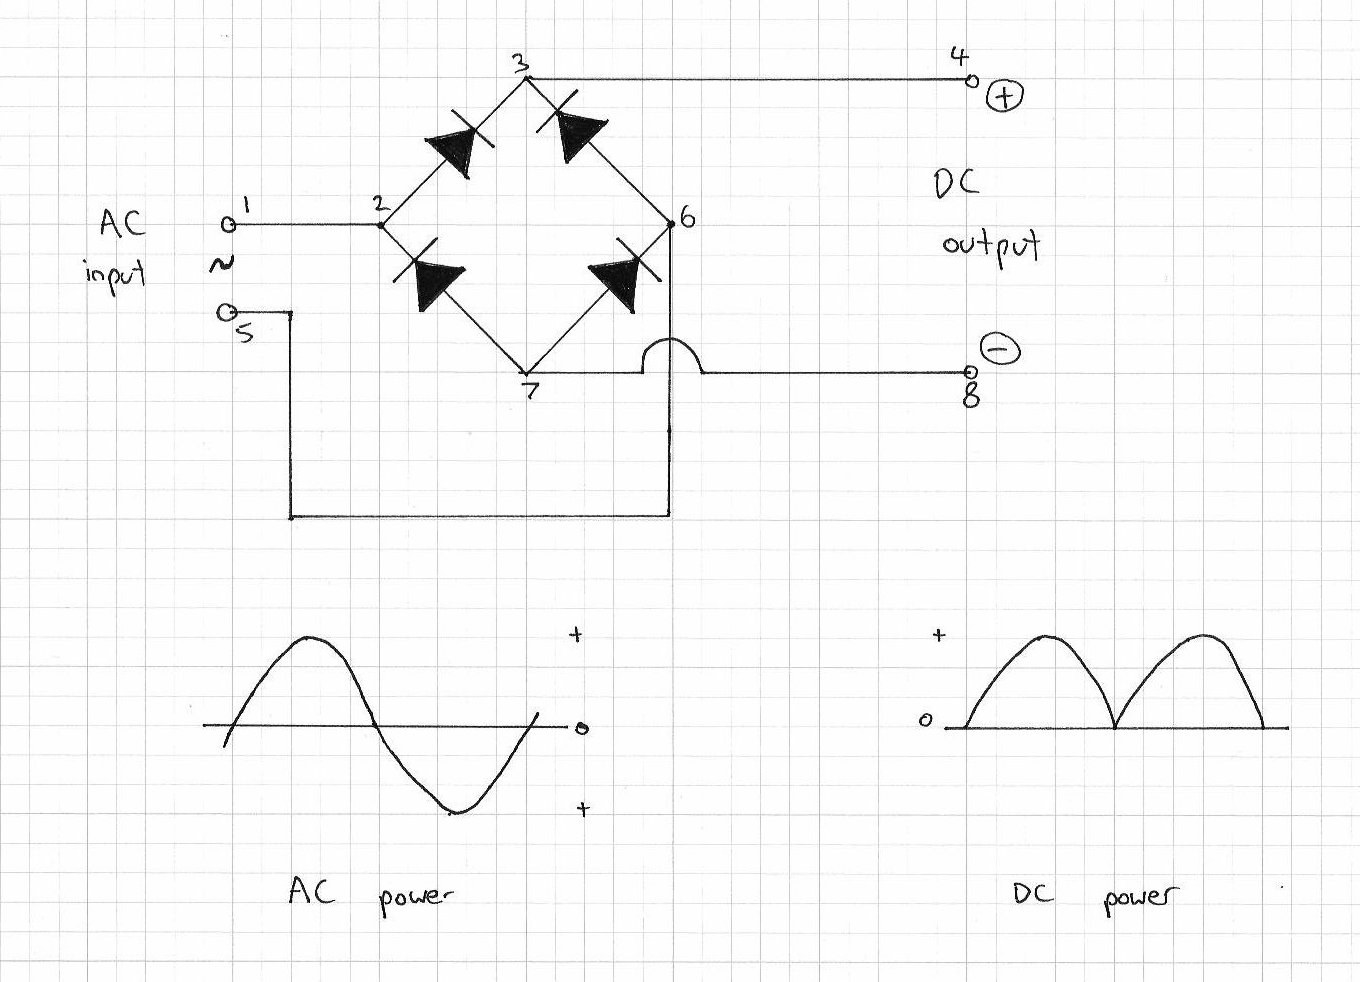 Simple Power Saver Circuit moreover Mains Operated Led L further 5kva Ferrite Core Inverter Circuit likewise Trickle Charger 12 Volt Or 6 Volt moreover . on bridge rectifier circuit diagram 8